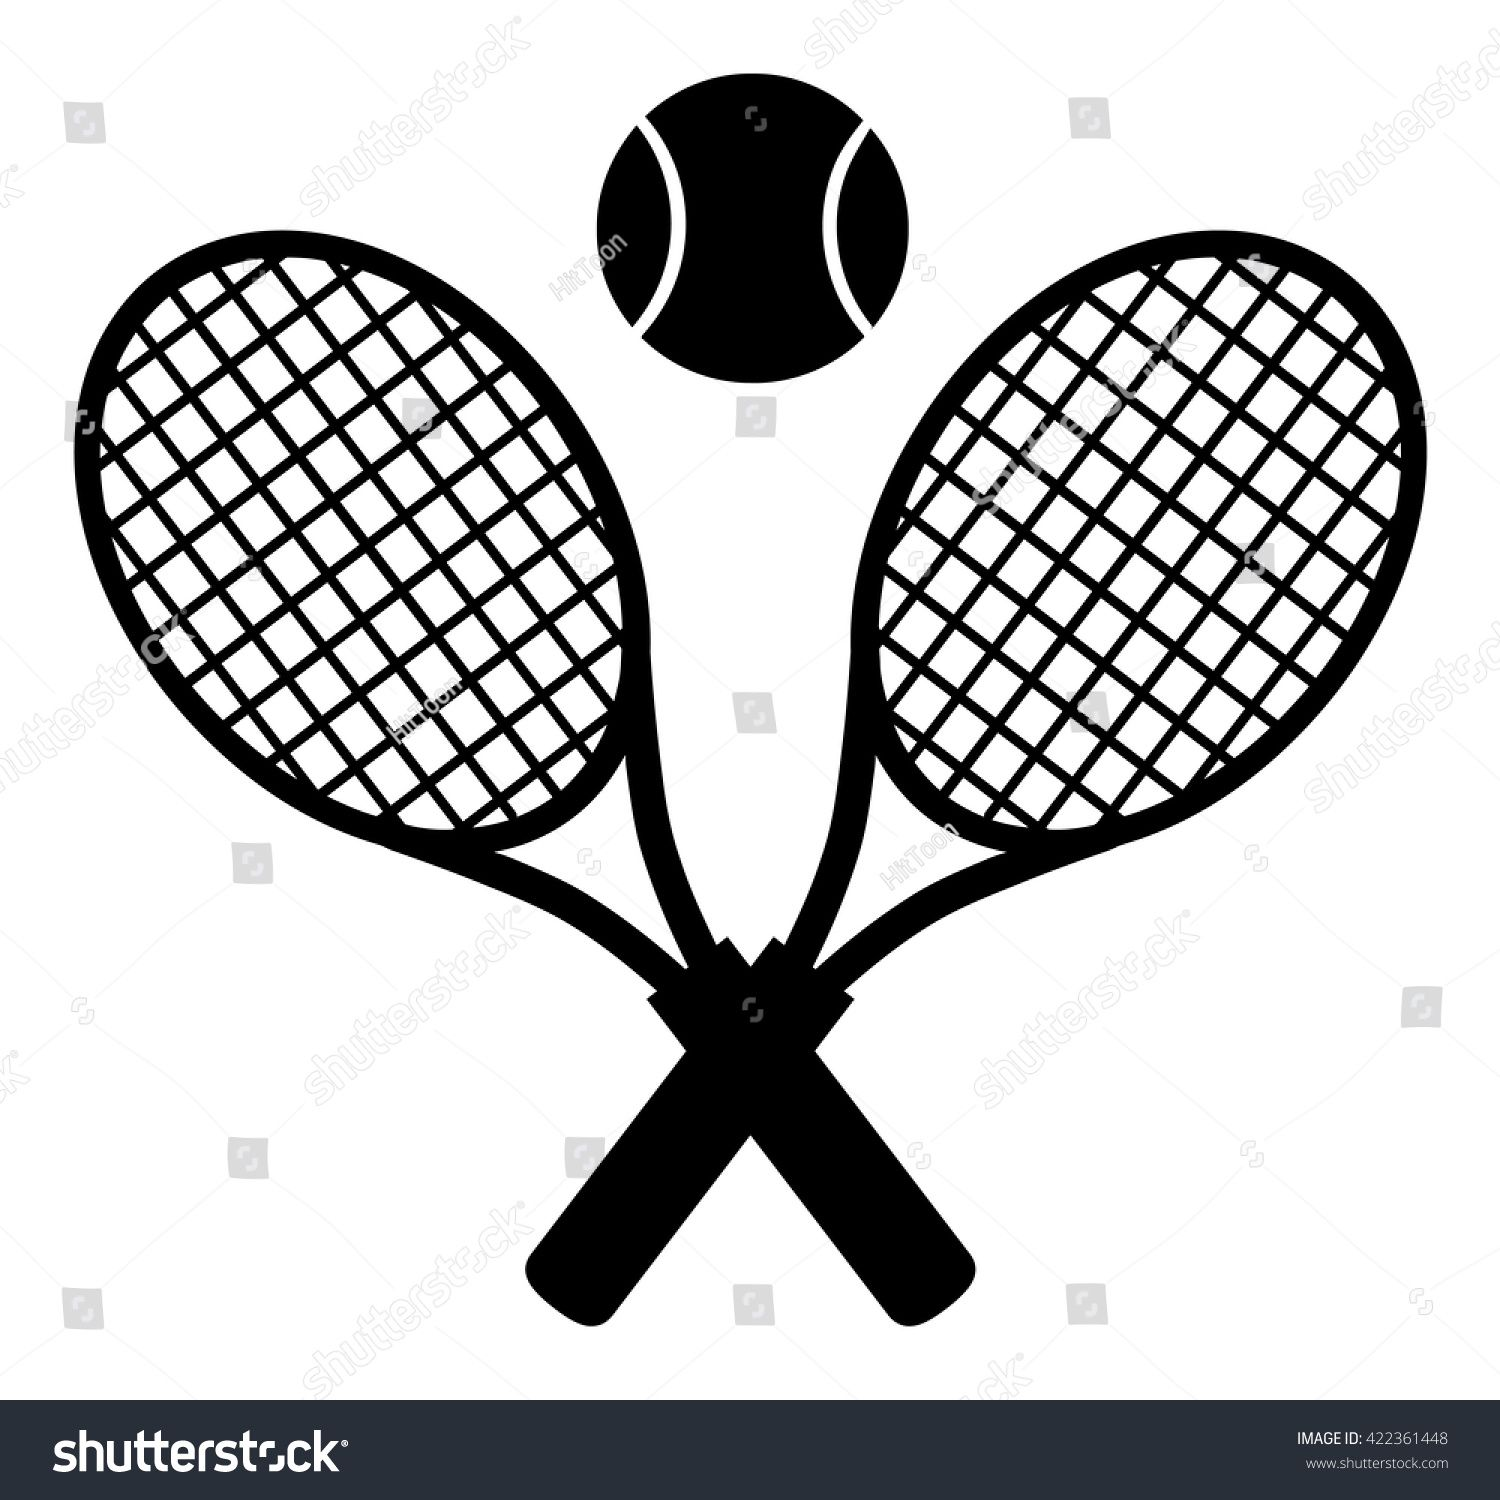 Crossed Racket And Tennis Ball Black Silhouette Vector Illustration Isolated On White Tennis Tennis Ball Tennis Racket